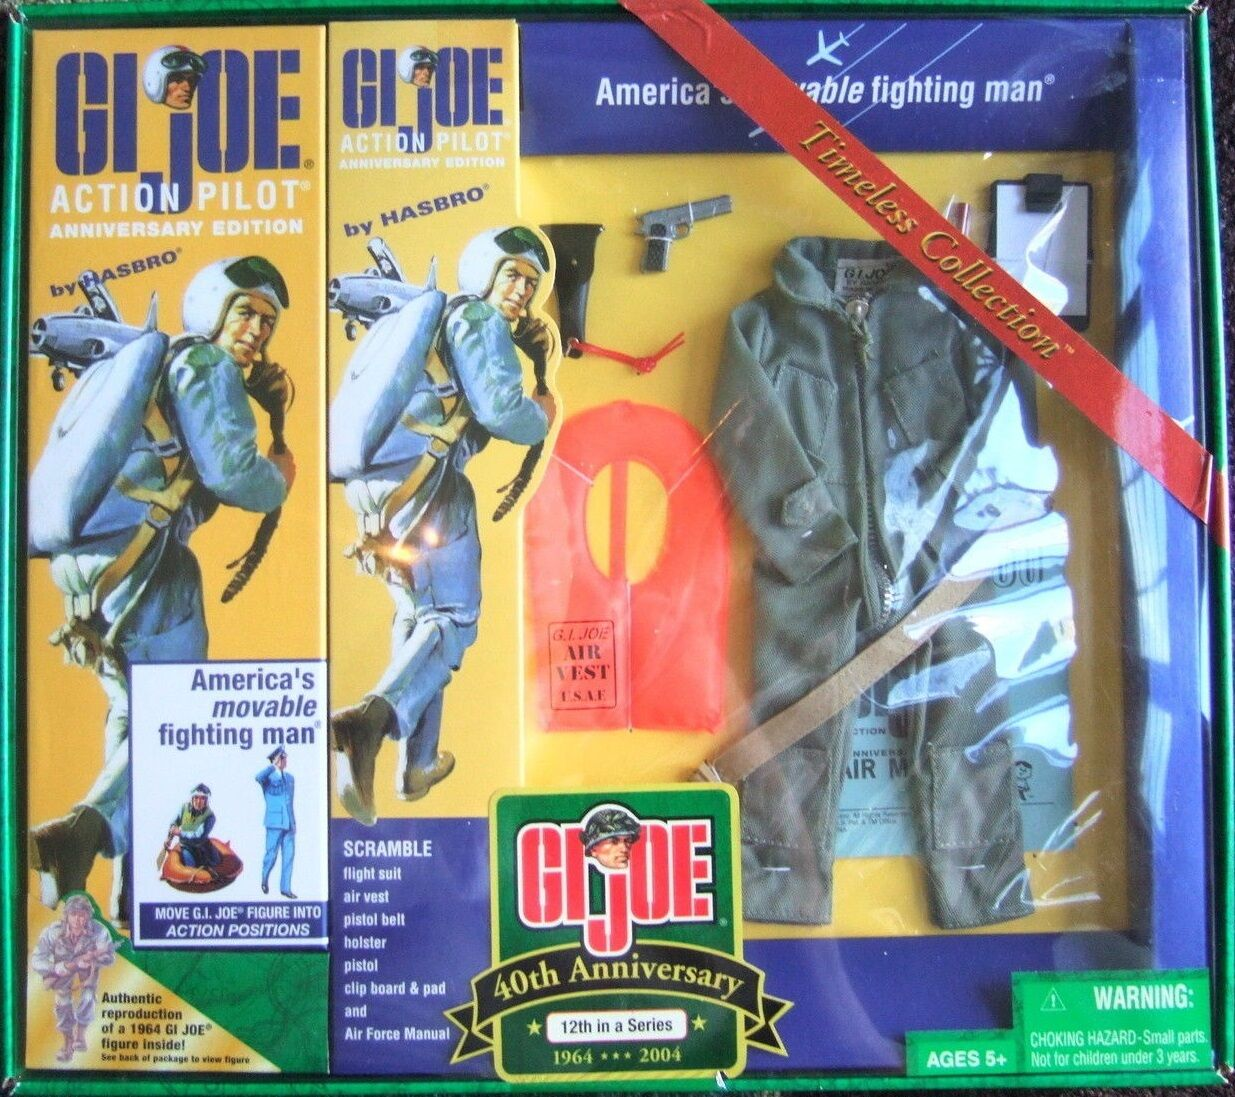 G.I. Joe 40th Anniversary Pilot Scramble Action Figure Hasbro JC